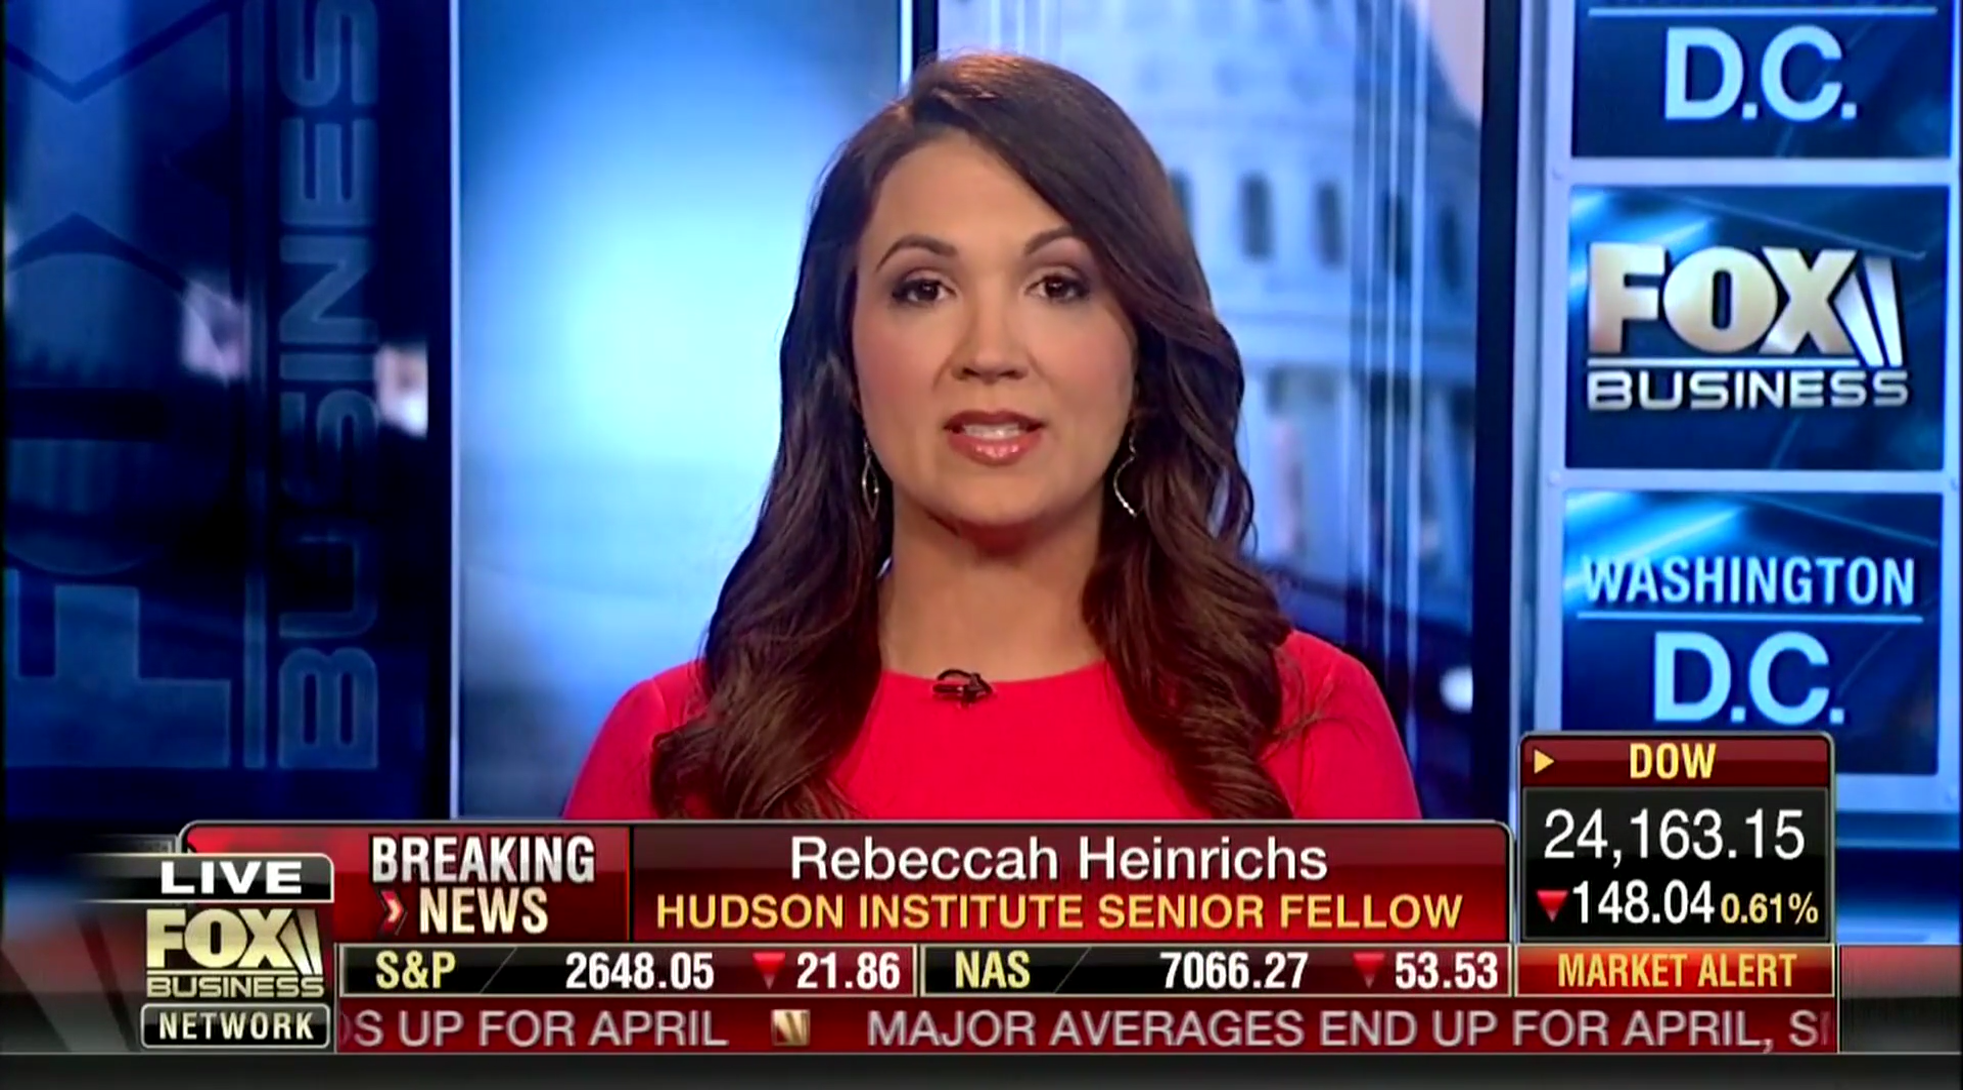 Rebeccah Heinrichs on Fox Business, April 30, 2018